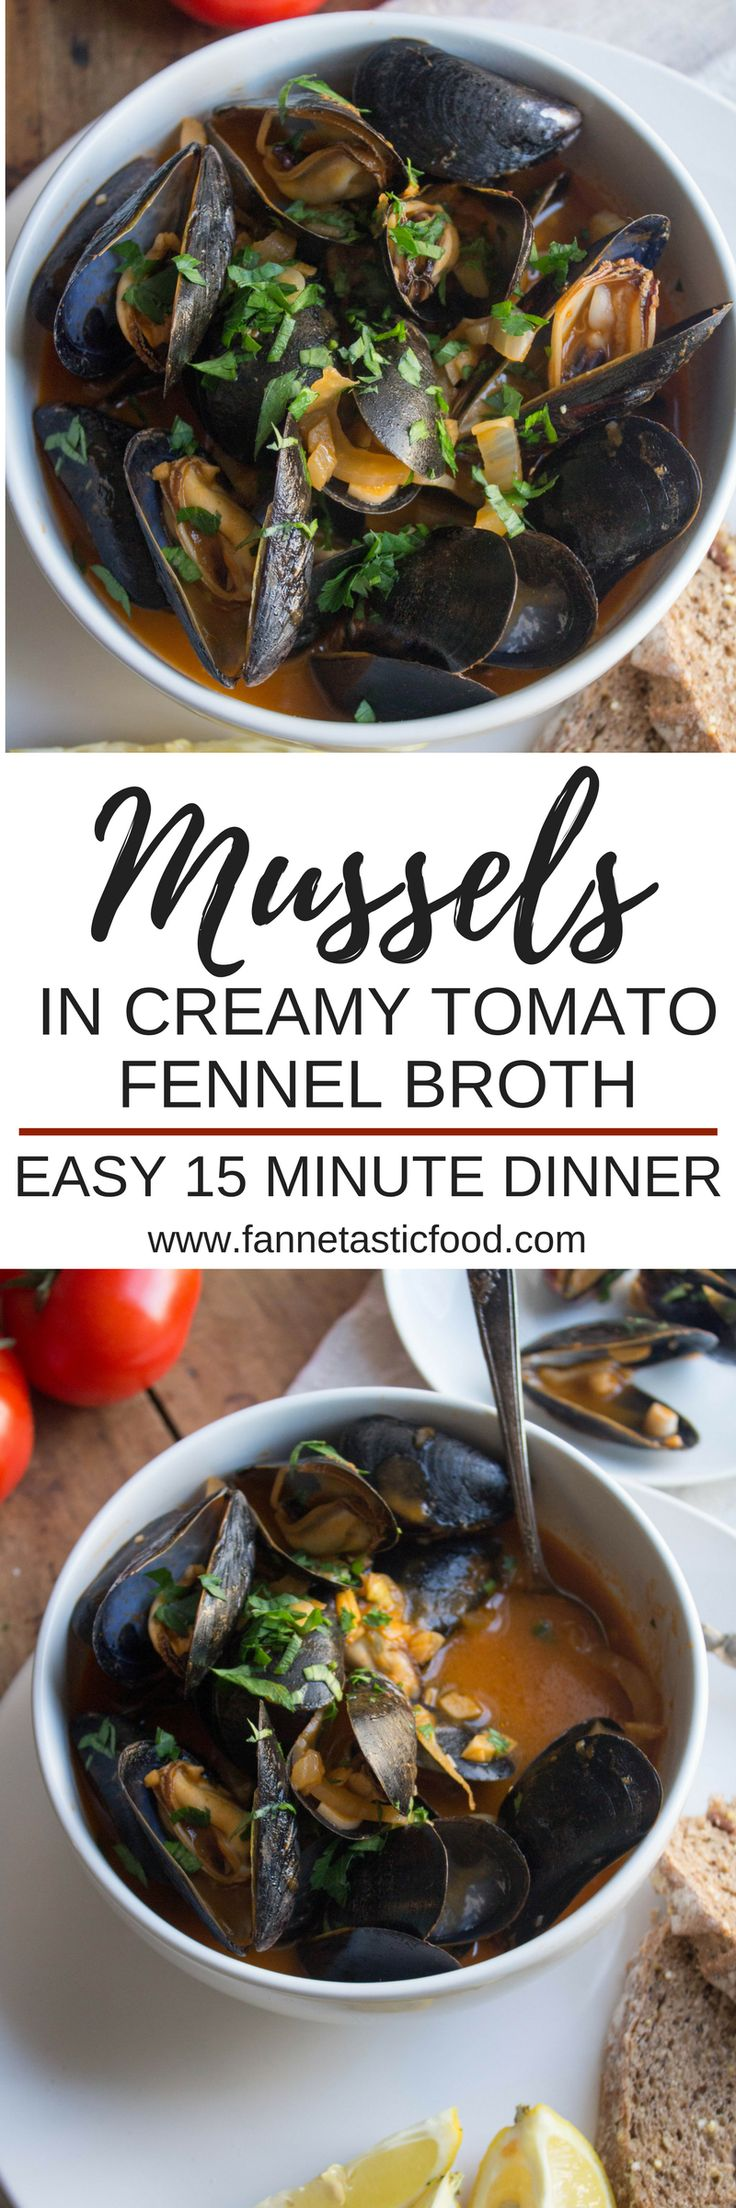 I was always intimidated by cooking mussels, but it turns out they're SO easy to make! This savory, satisfying meal comes together in just minutes thanks to a healthy shortcut that makes the broth super creamy and flavorful. Perfect for a quick 15 minute dinner or for impressing dinner guests!